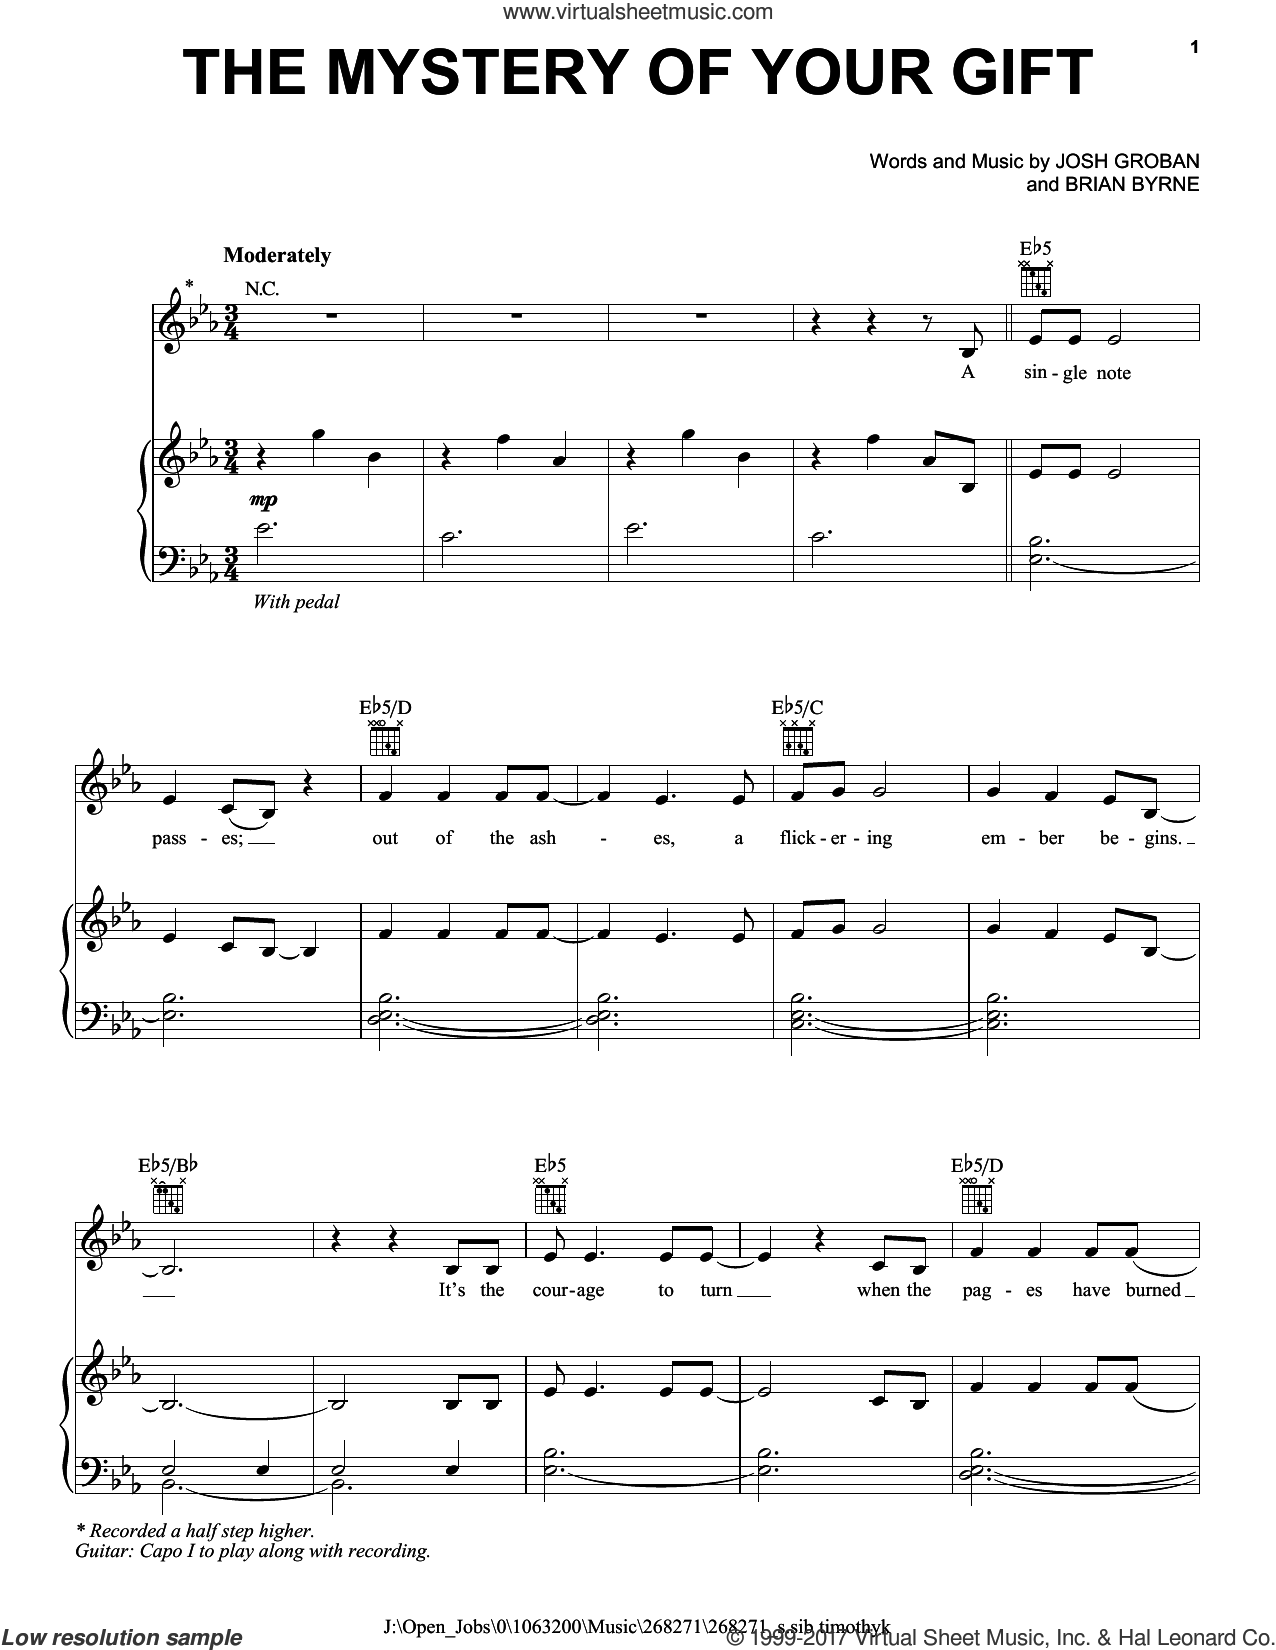 josh groban sheet music pdf